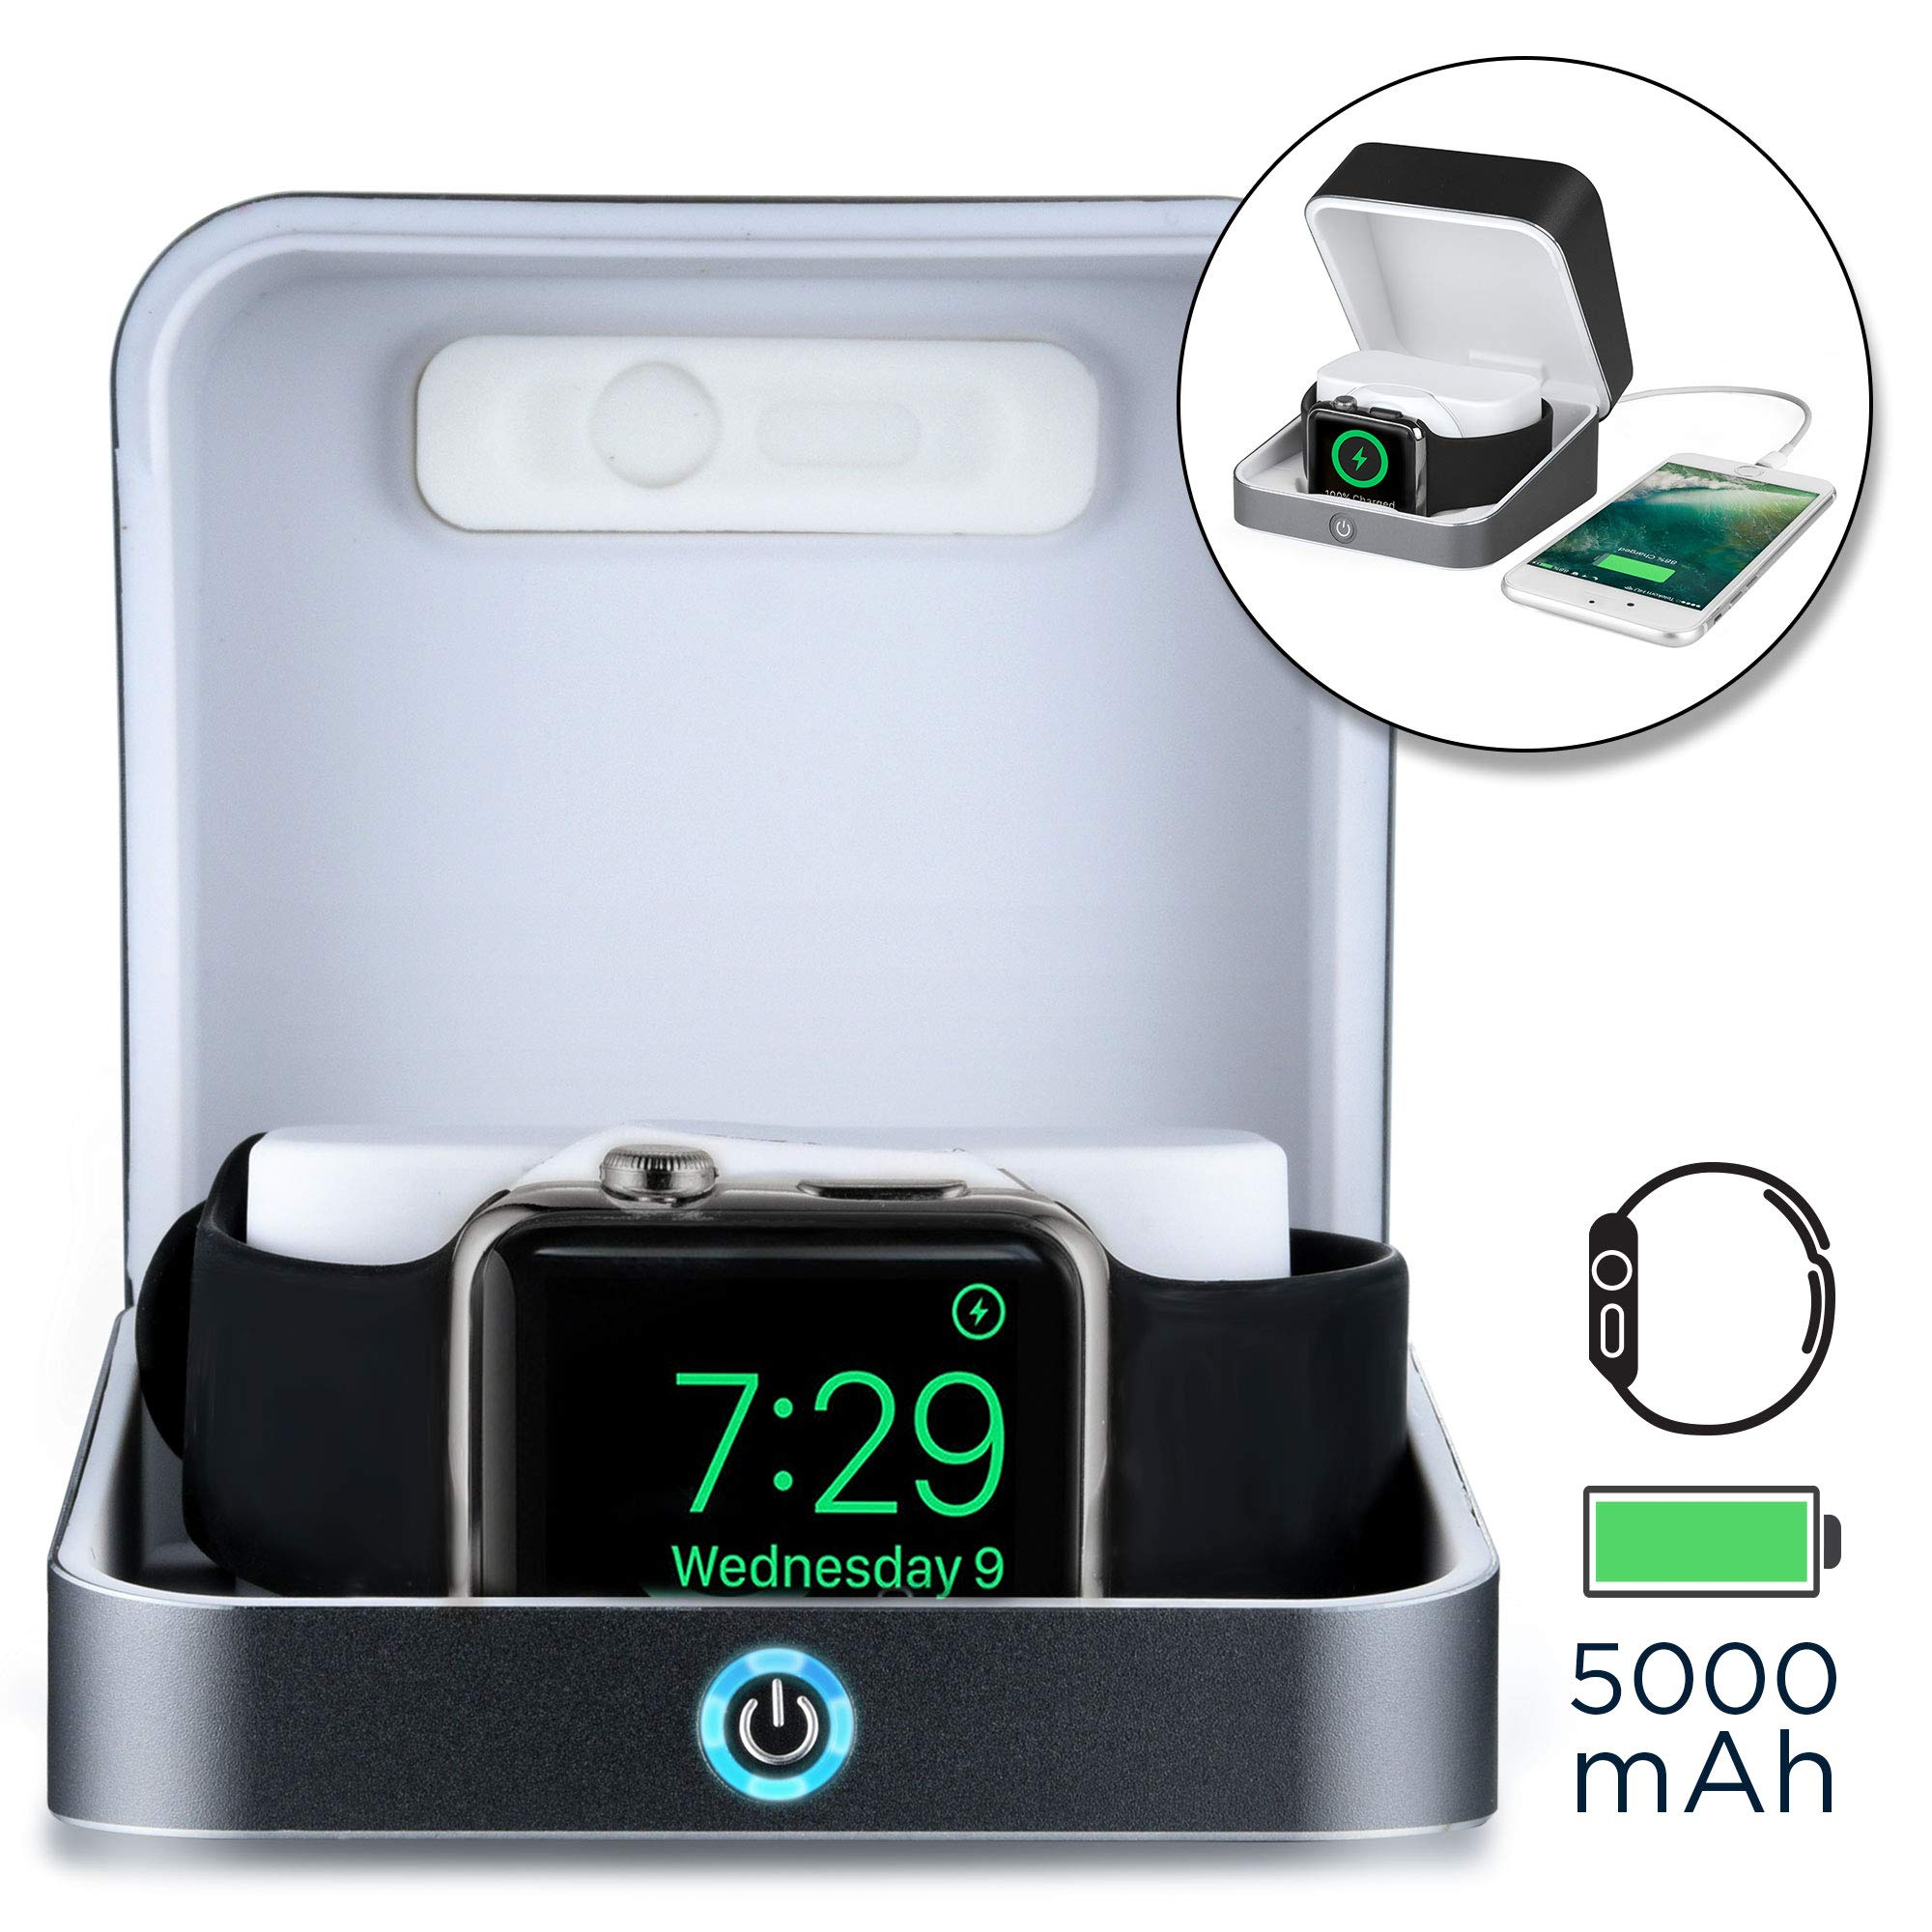 Sumato WatchBox Charging Case for Apple Watch 5 4 3 2 1 [Travel Battery Charger] MFI Certified 5000mAh Power Bank, Charges iWatch & iPhone (Dark Gray) by Sumato WatchBox